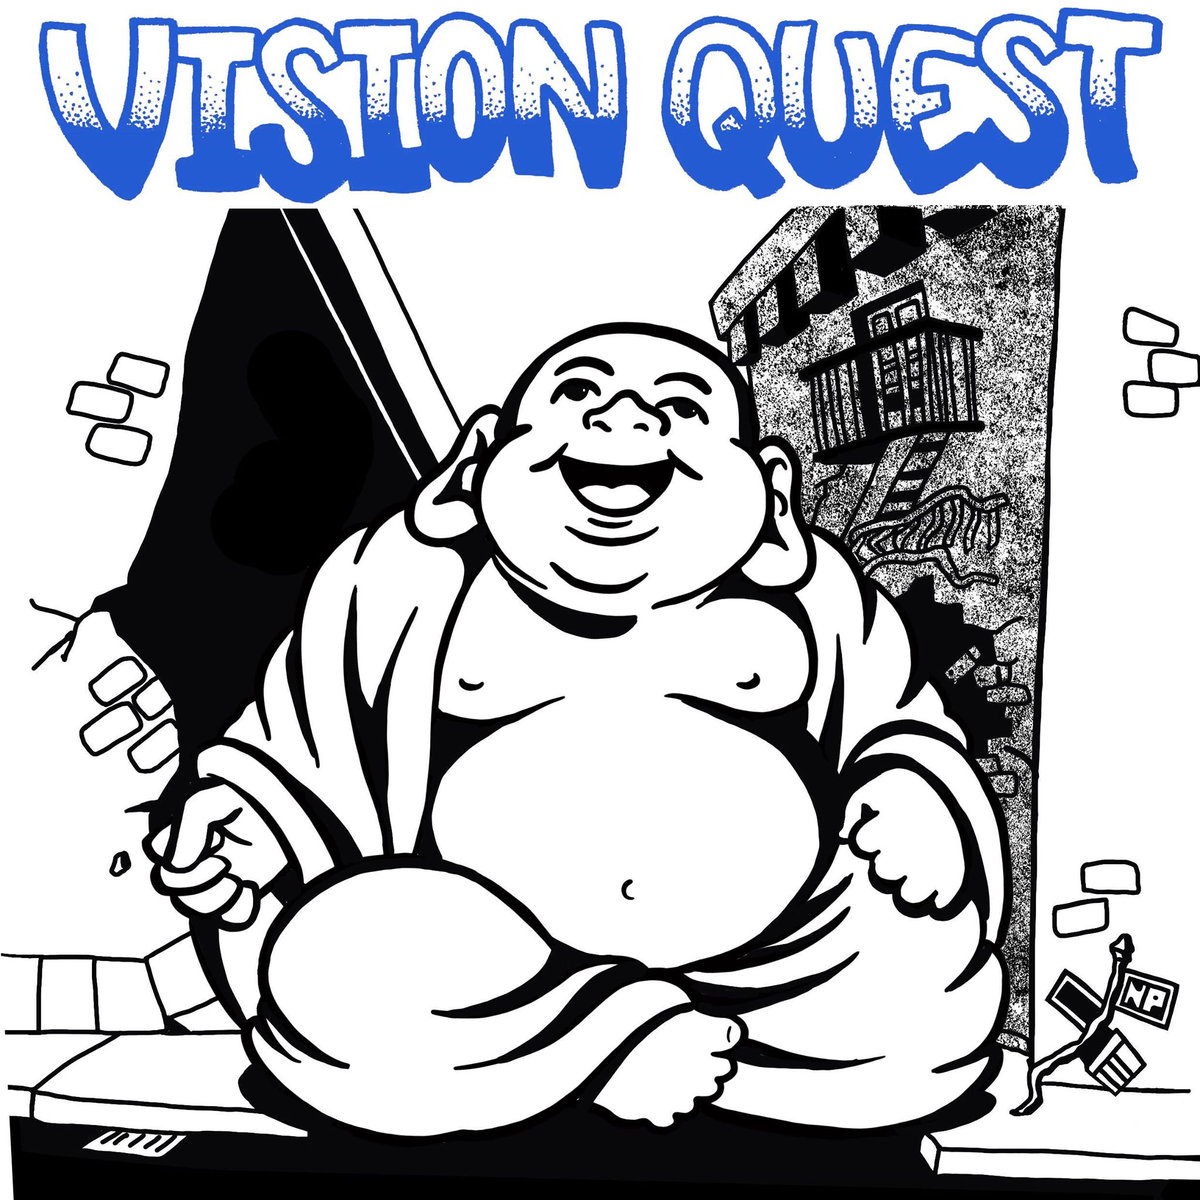 Vision Quest - Still Real b/w Vision Quest 7